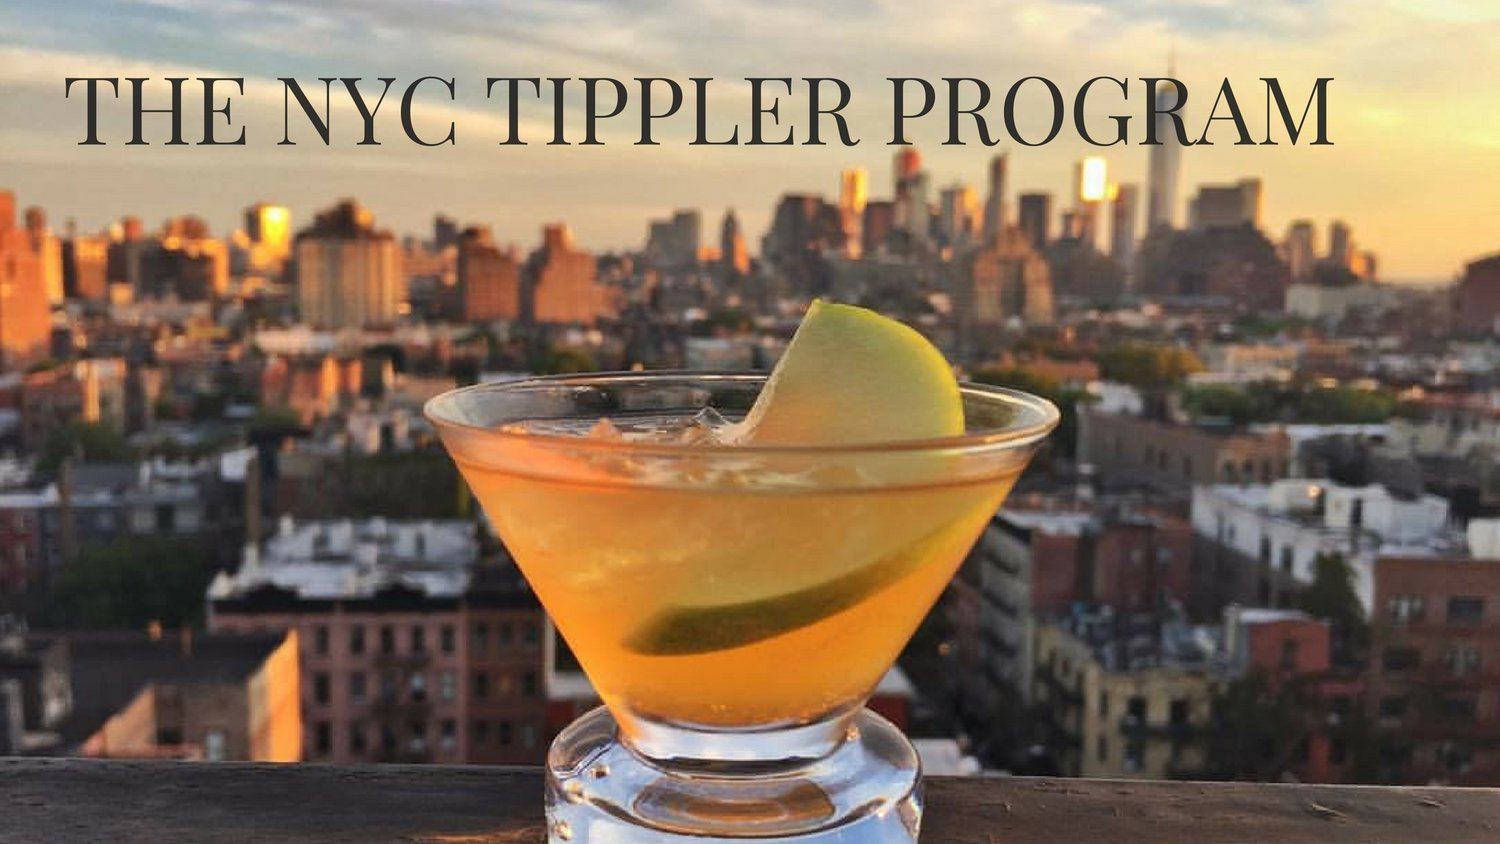 The NYC Tippler